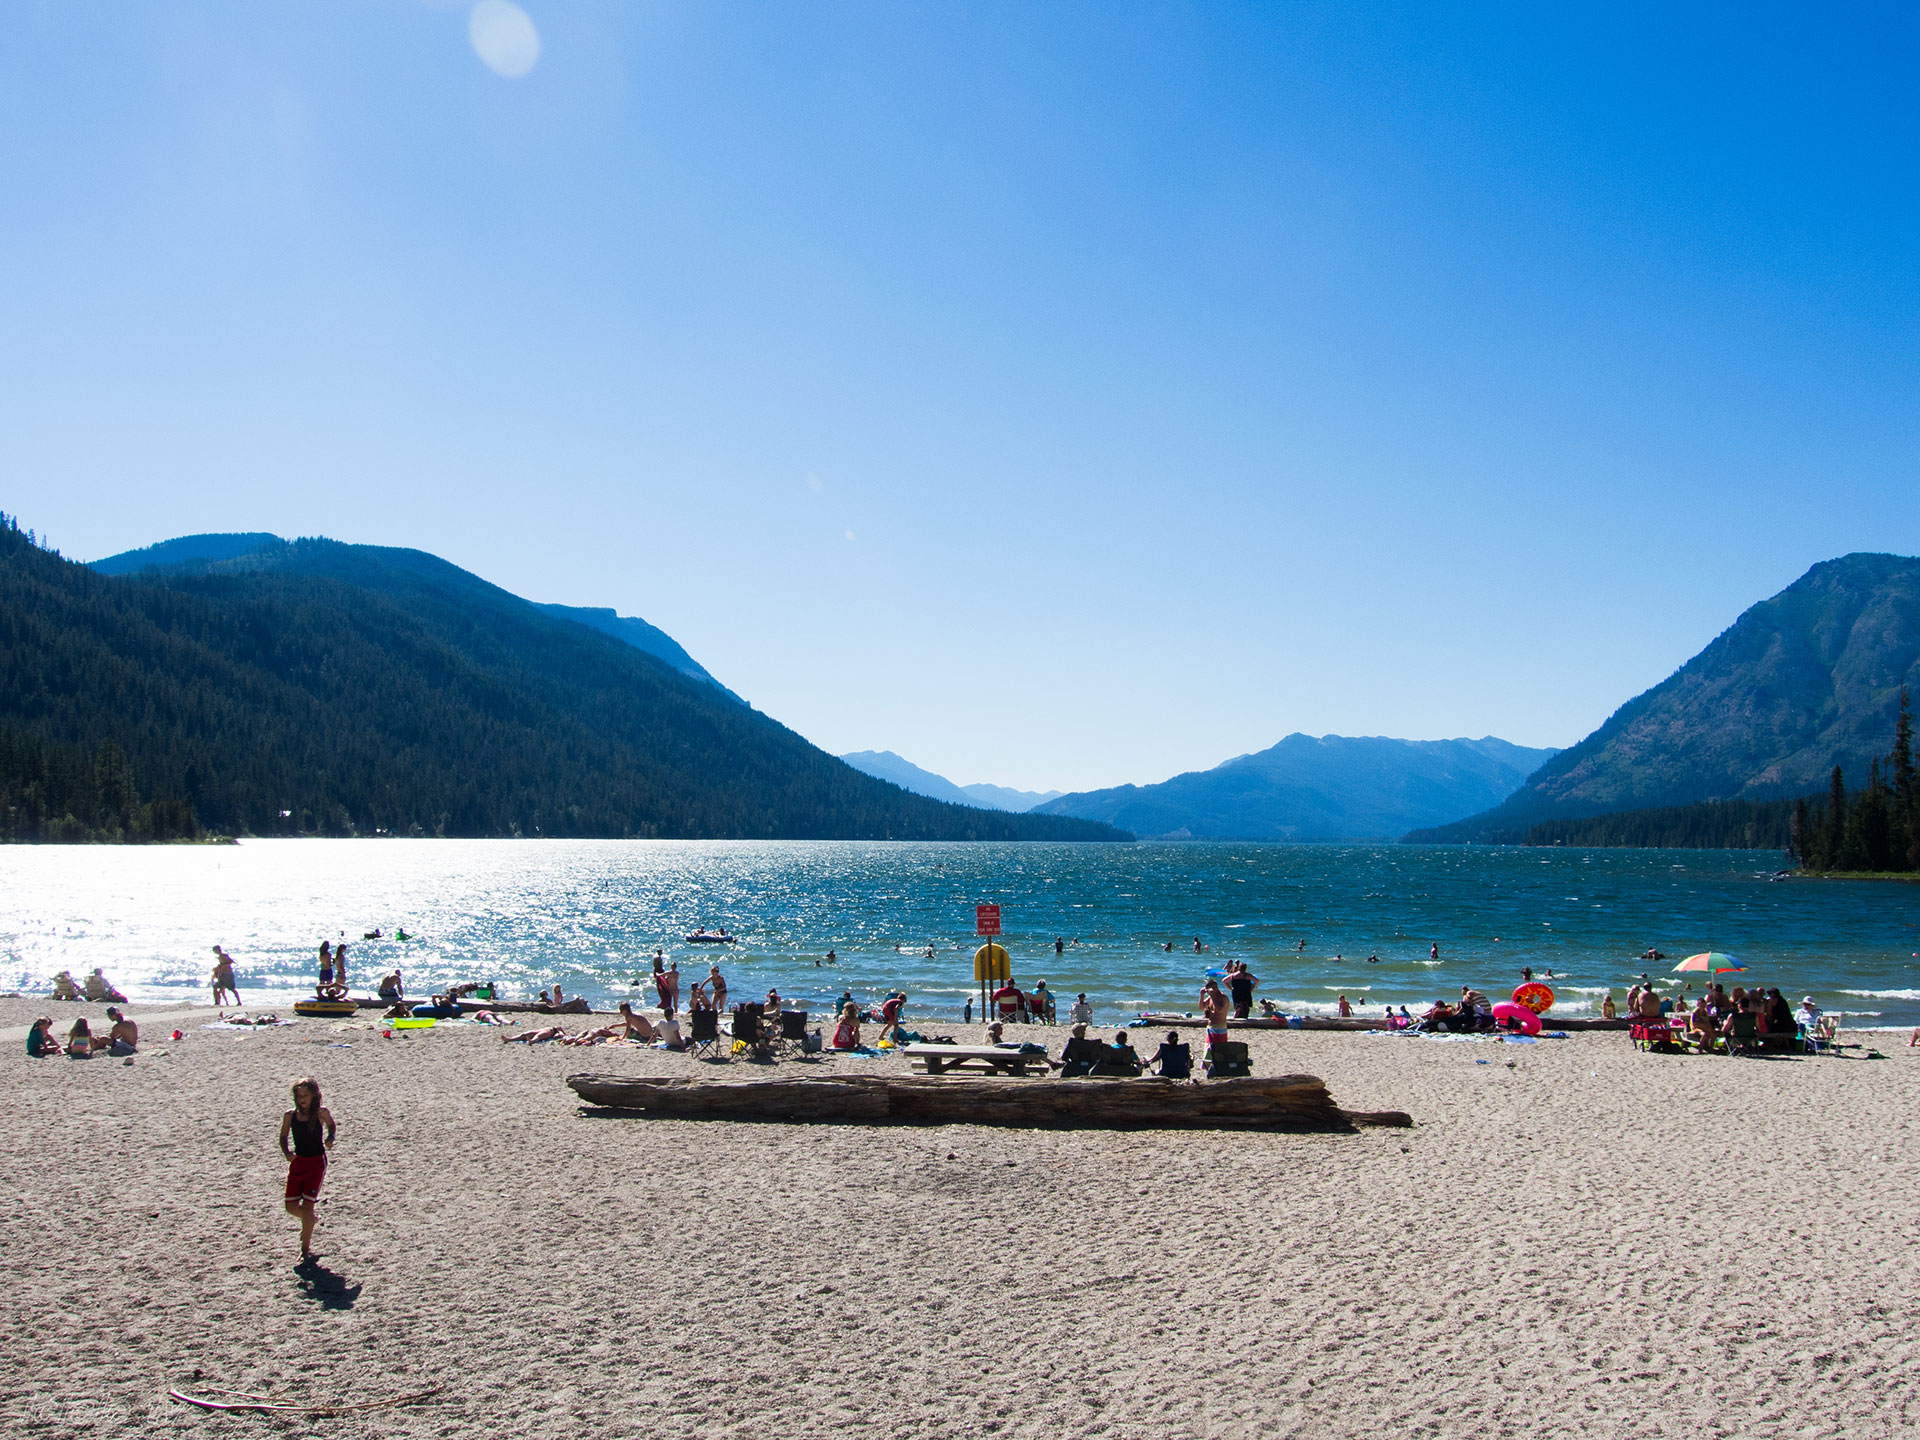 The beach and water on Lake Chelan